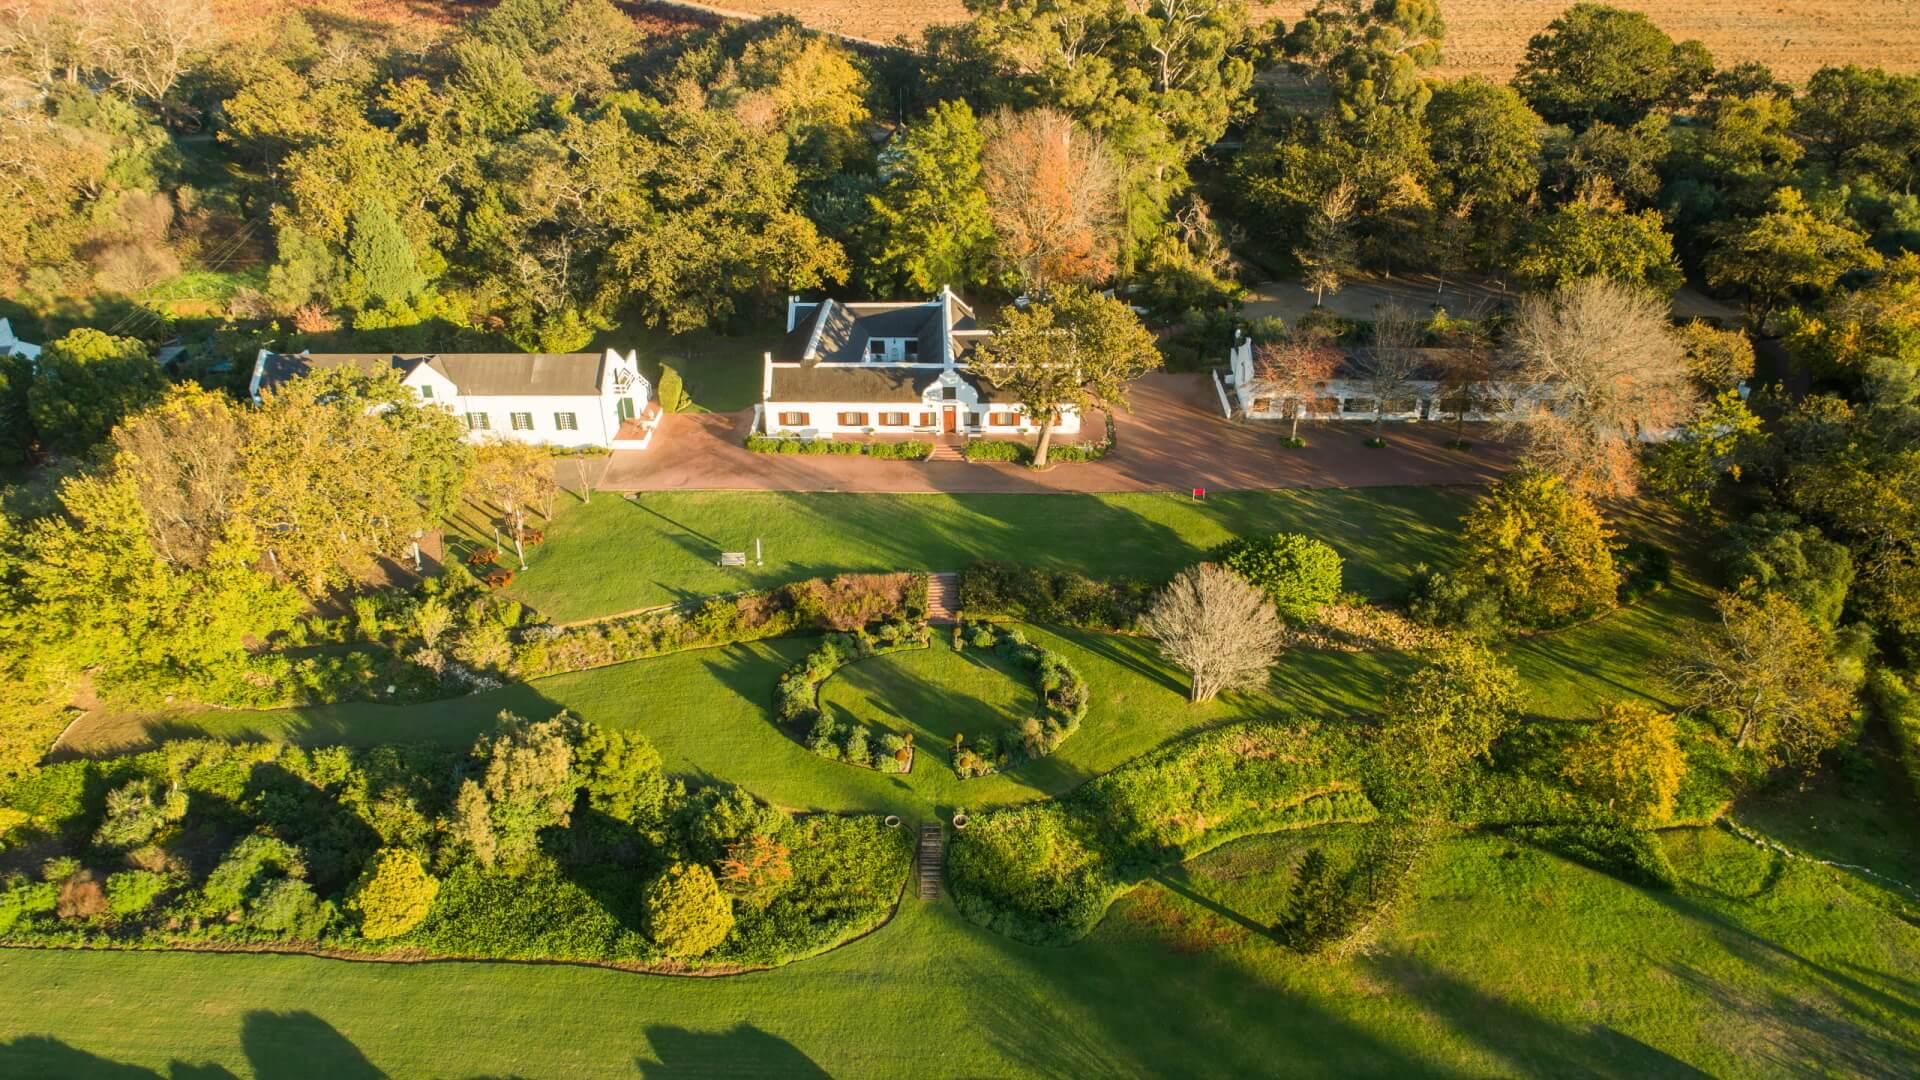 Aerial View of Plaisir de Merle's wine tasting area and lush lawn in Franschhoek